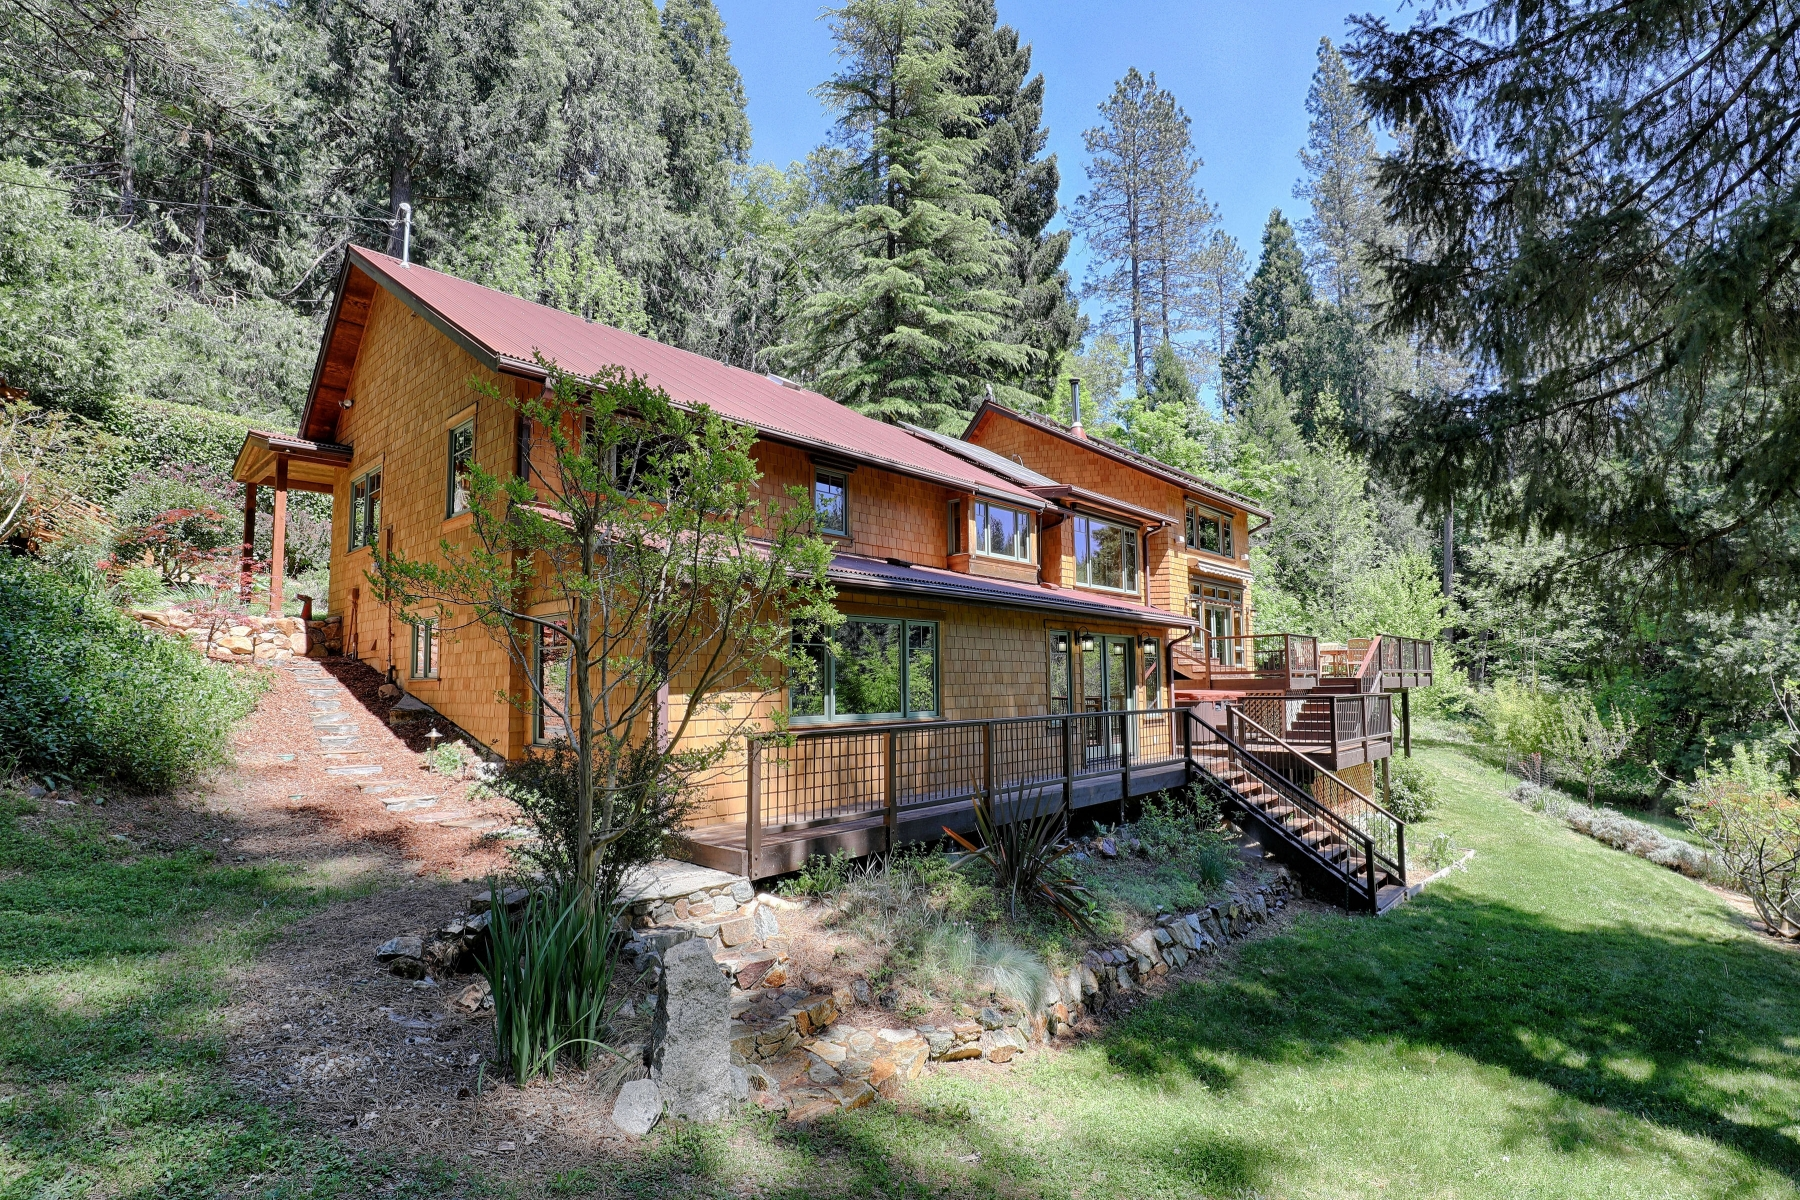 Single Family Home for Active at 353 Old Downieville Hwy, Nevada City, CA 353 Old Downieville Hwy Nevada City, California 95959 United States